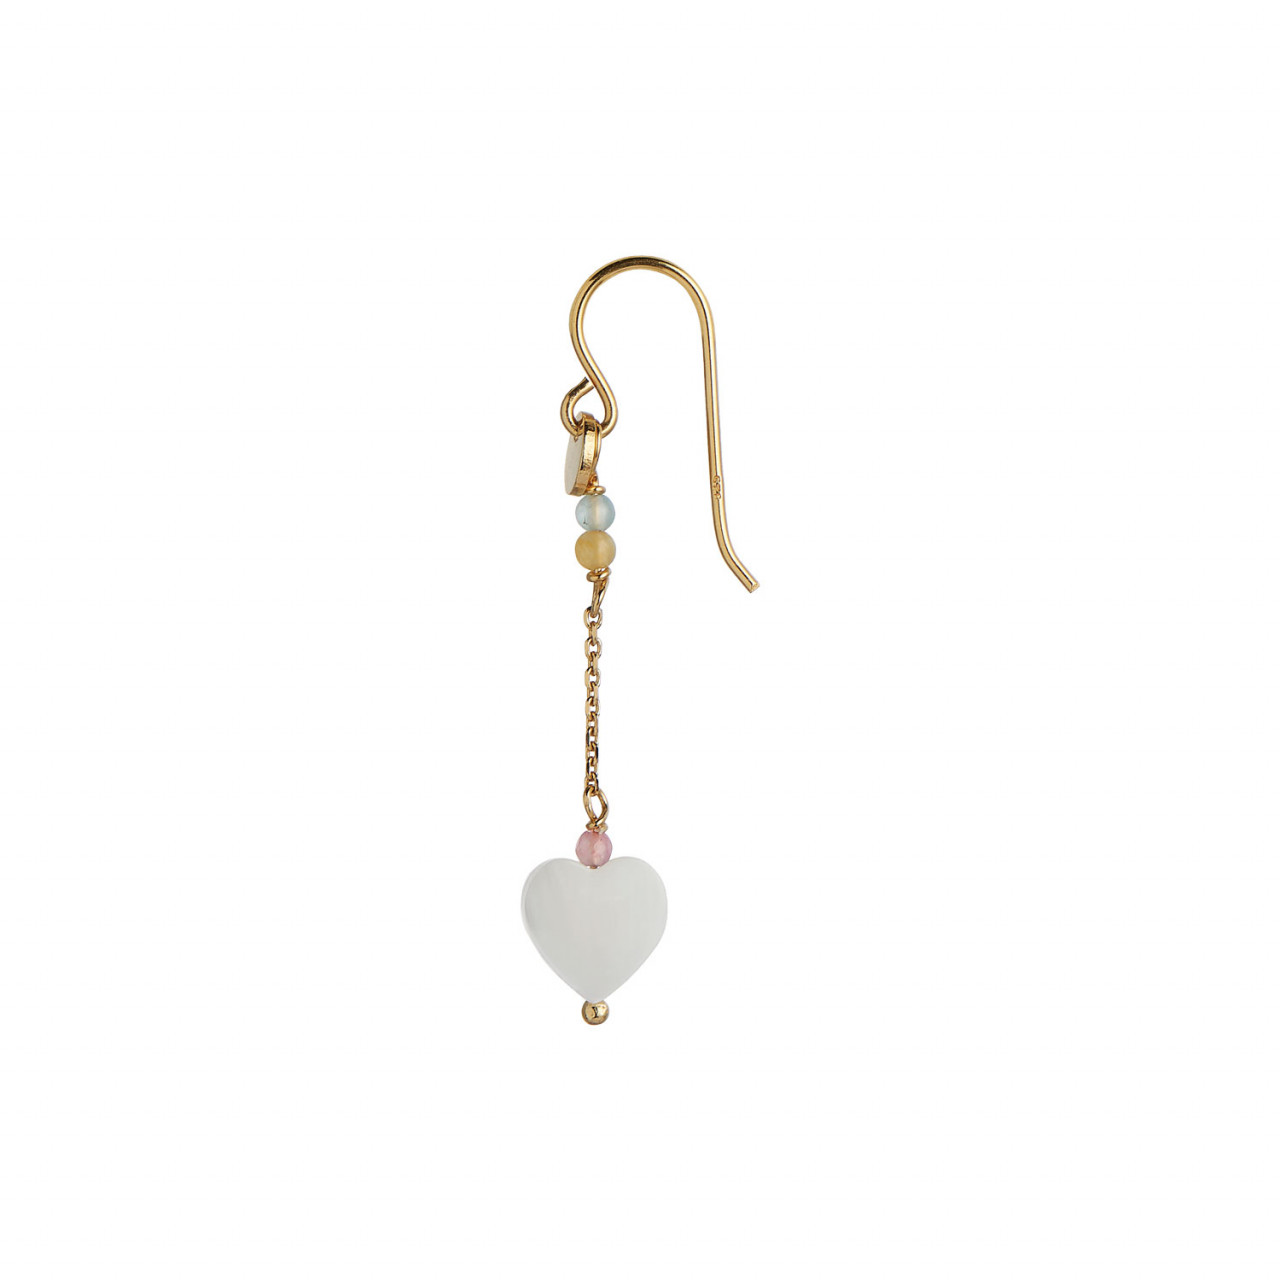 Love Heart Earring Gold with Chain and Gemstones - Pastel Mix